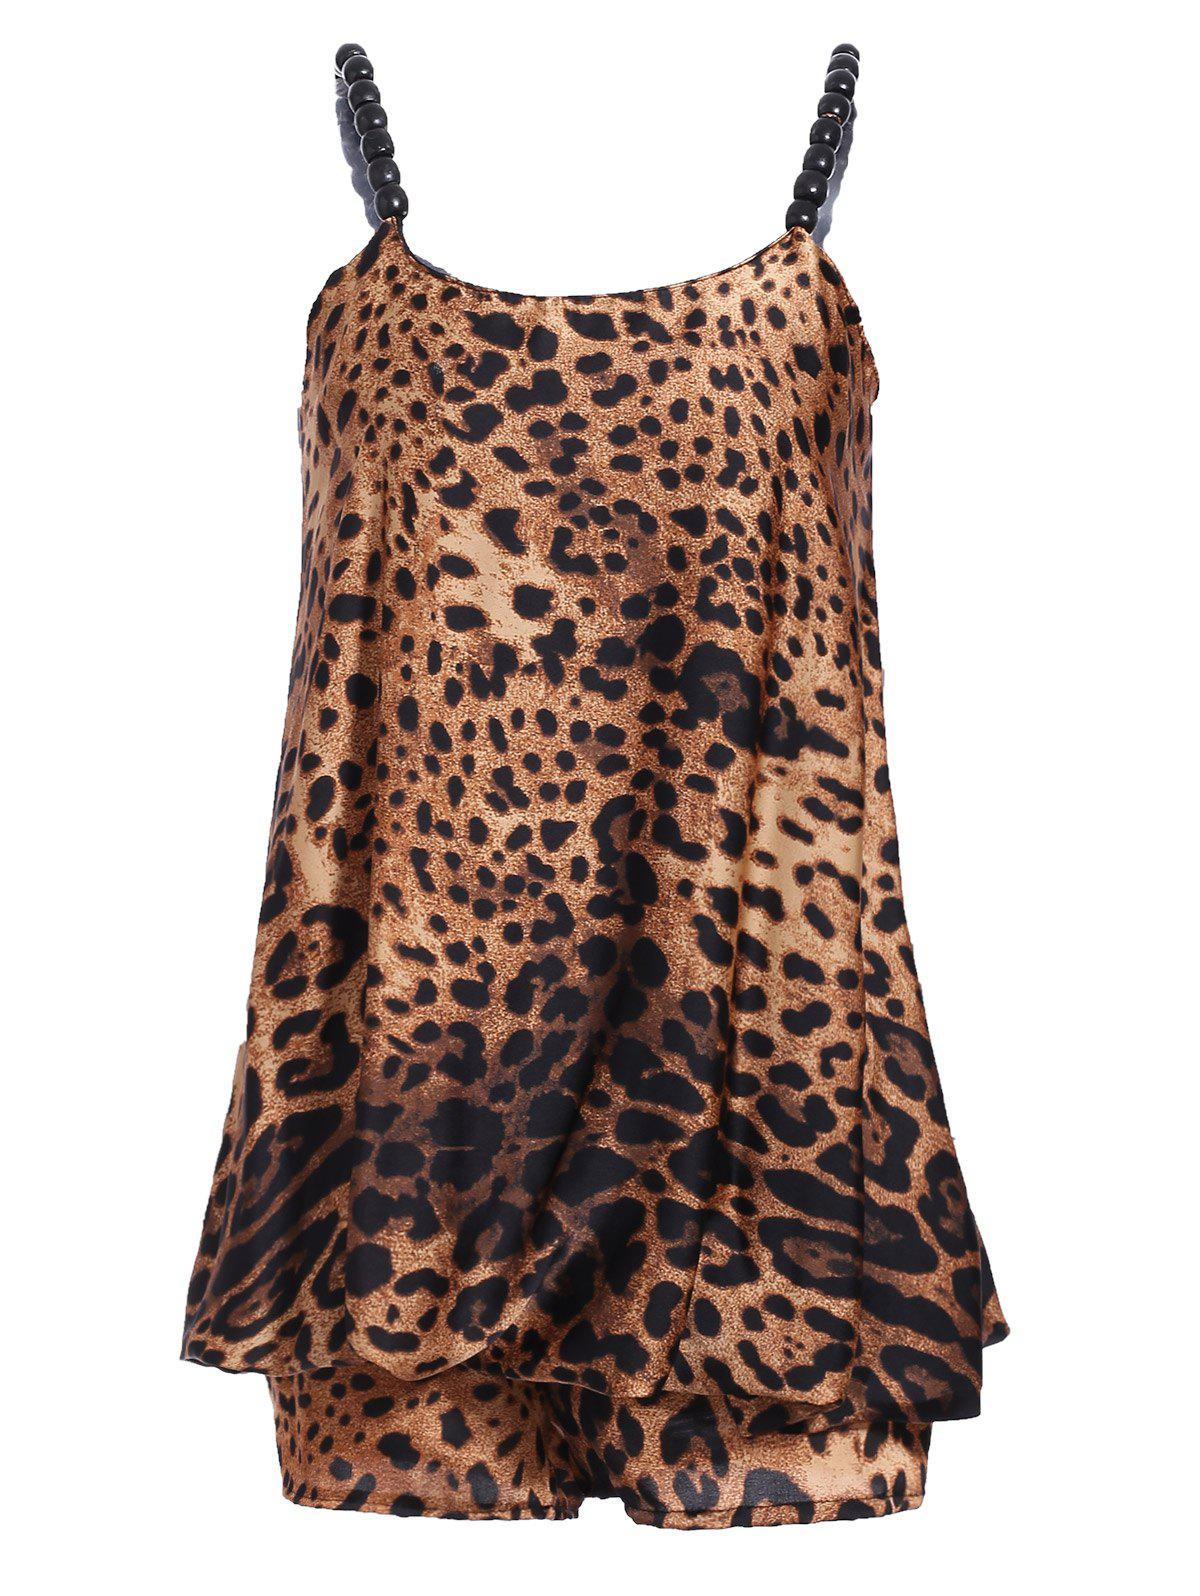 Stylish Women's Spaghetti Strap Leopard Print Top + Shorts Twinset - LEOPARD ONE SIZE(FIT SIZE XS TO M)